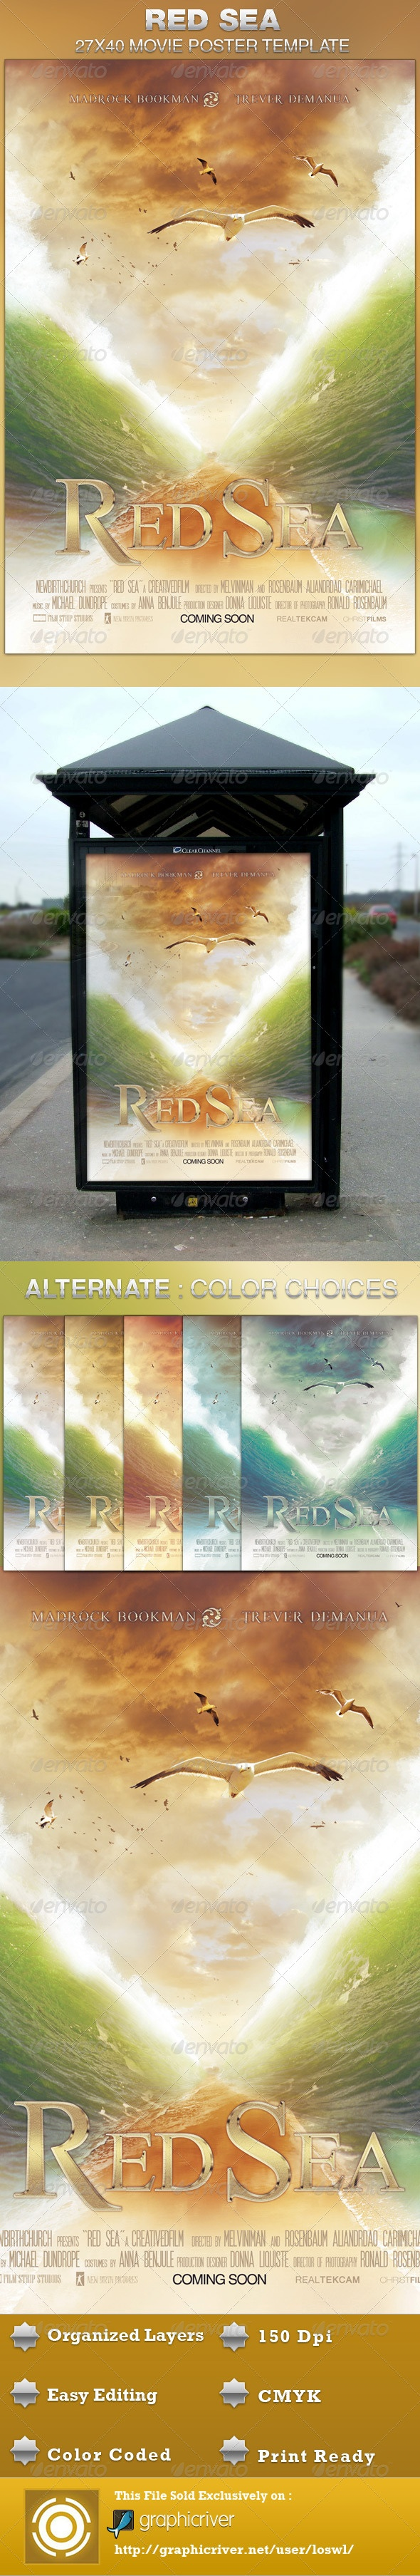 This Red Sea Movie Poster Template is sold exclusively on graphicriver, it can be used for your movie promotion, event marketing, church movie night, sermon marketing etc. In this package you'll find 1 Photoshop file. All text and graphics in the file are editable, color coded and simple to edit. The file also has 10 one-click color options.  $6.00